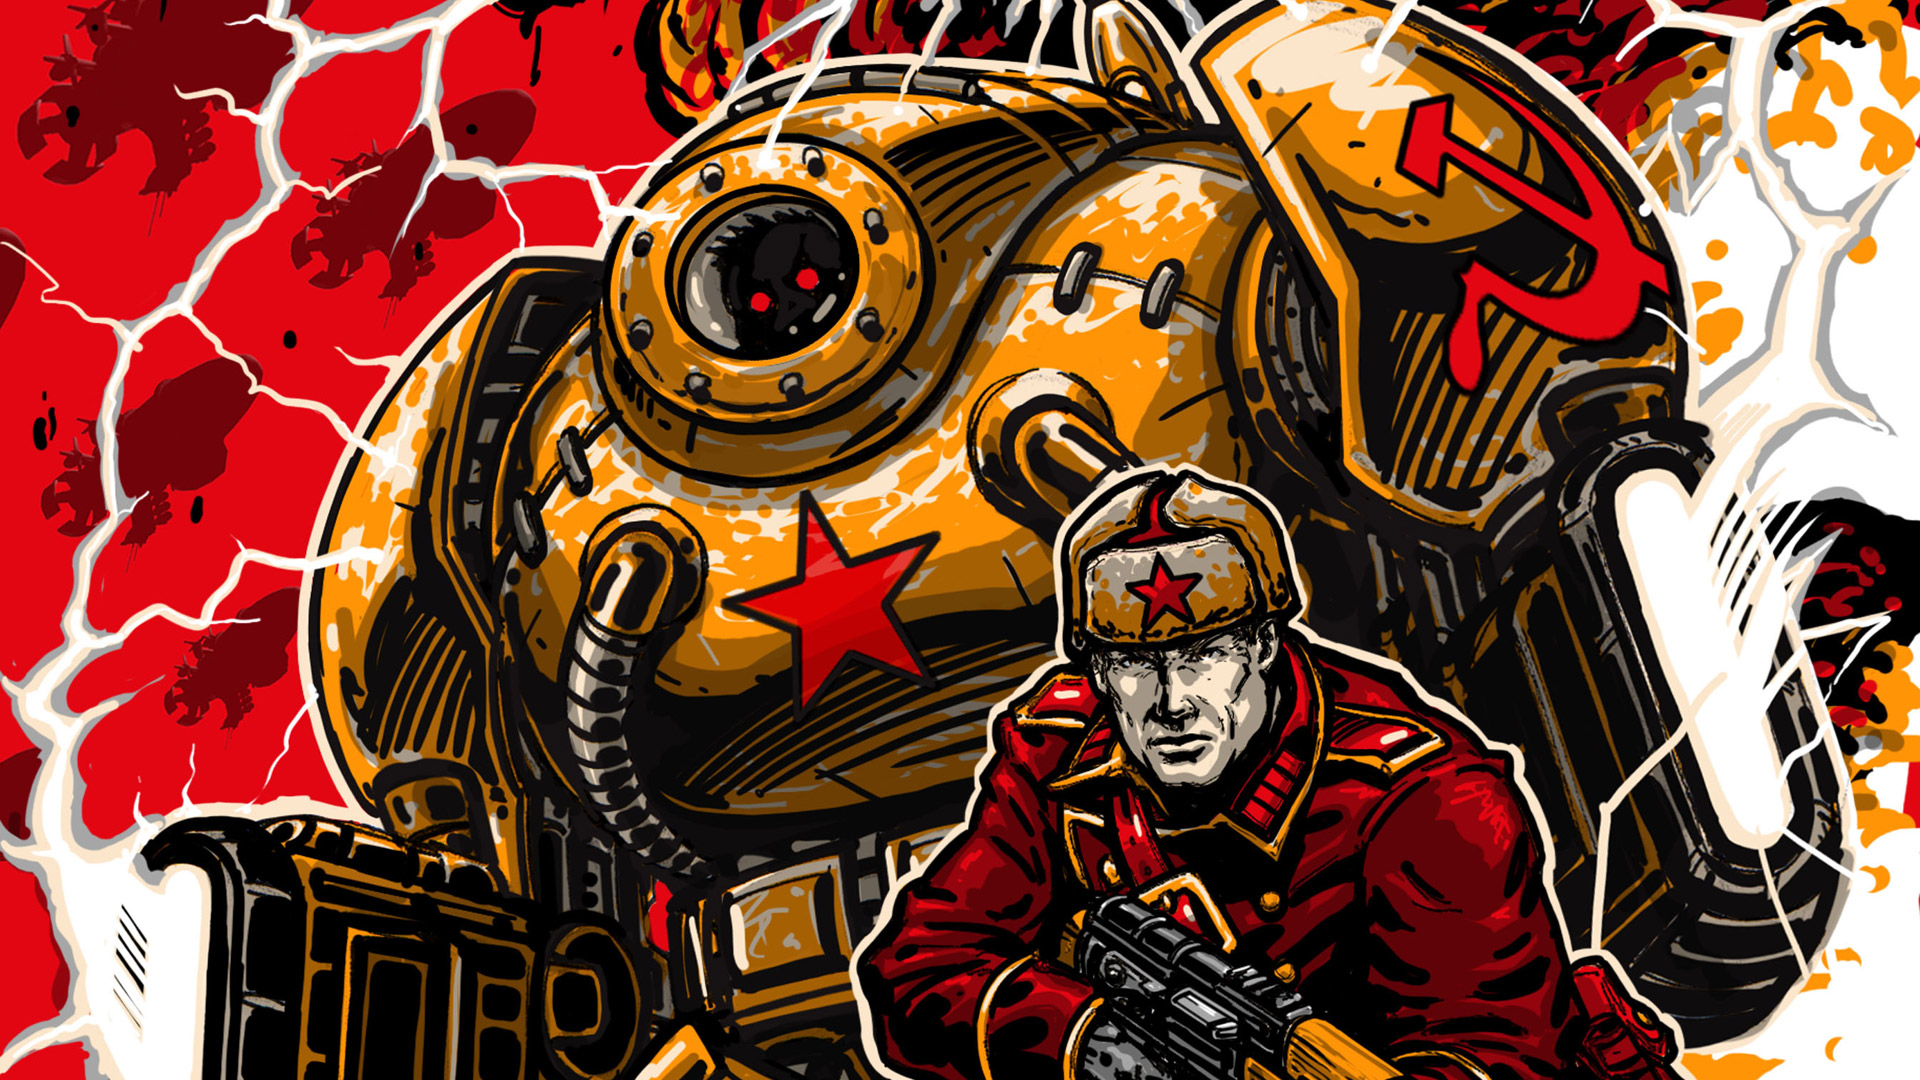 Command & Conquer: Red Alert 3 Wallpaper in 1920x1080